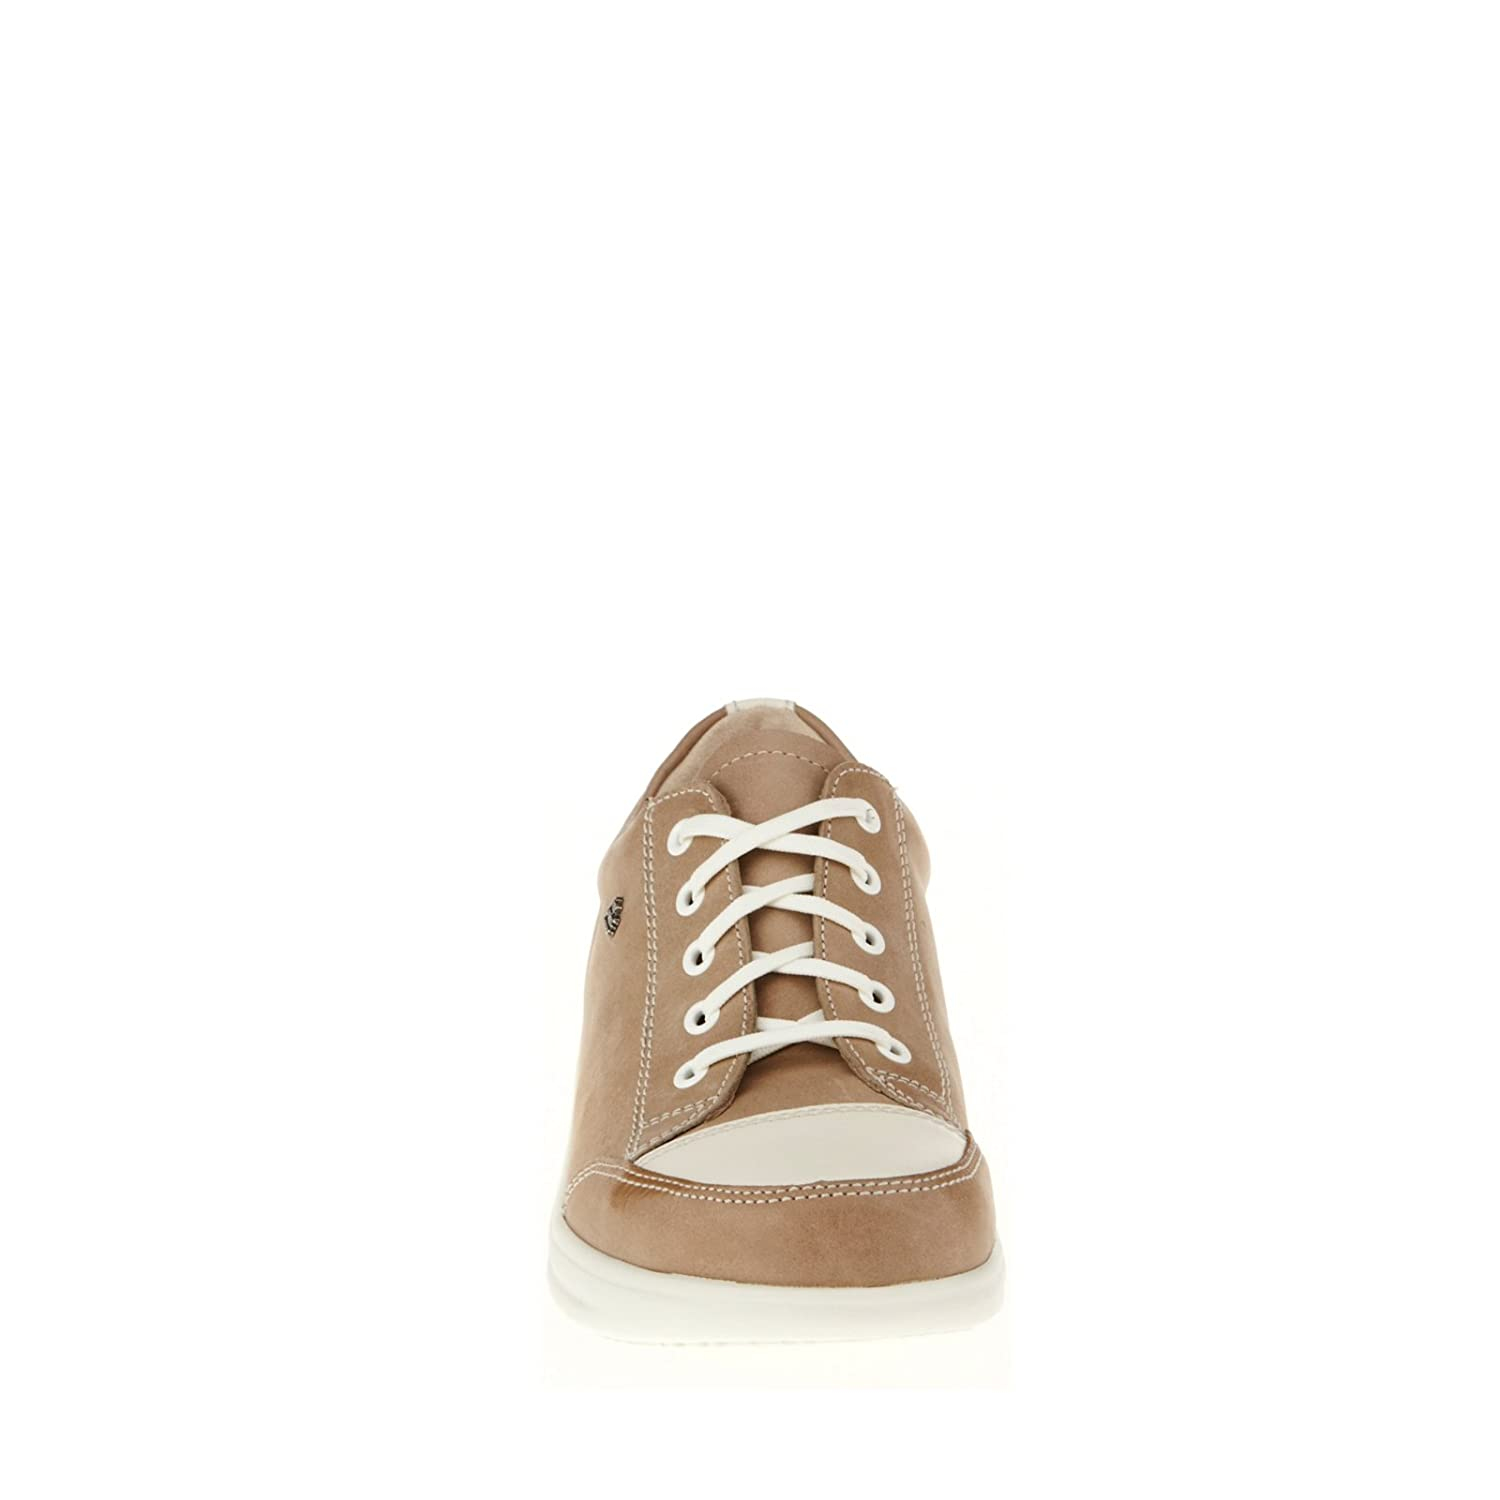 Finn Comfort Women's Ikebukuro Oxford B0099NXE4I 11.5 (UK Women's 9) Medium|Taupe, Jasmin Equipe, Okapi